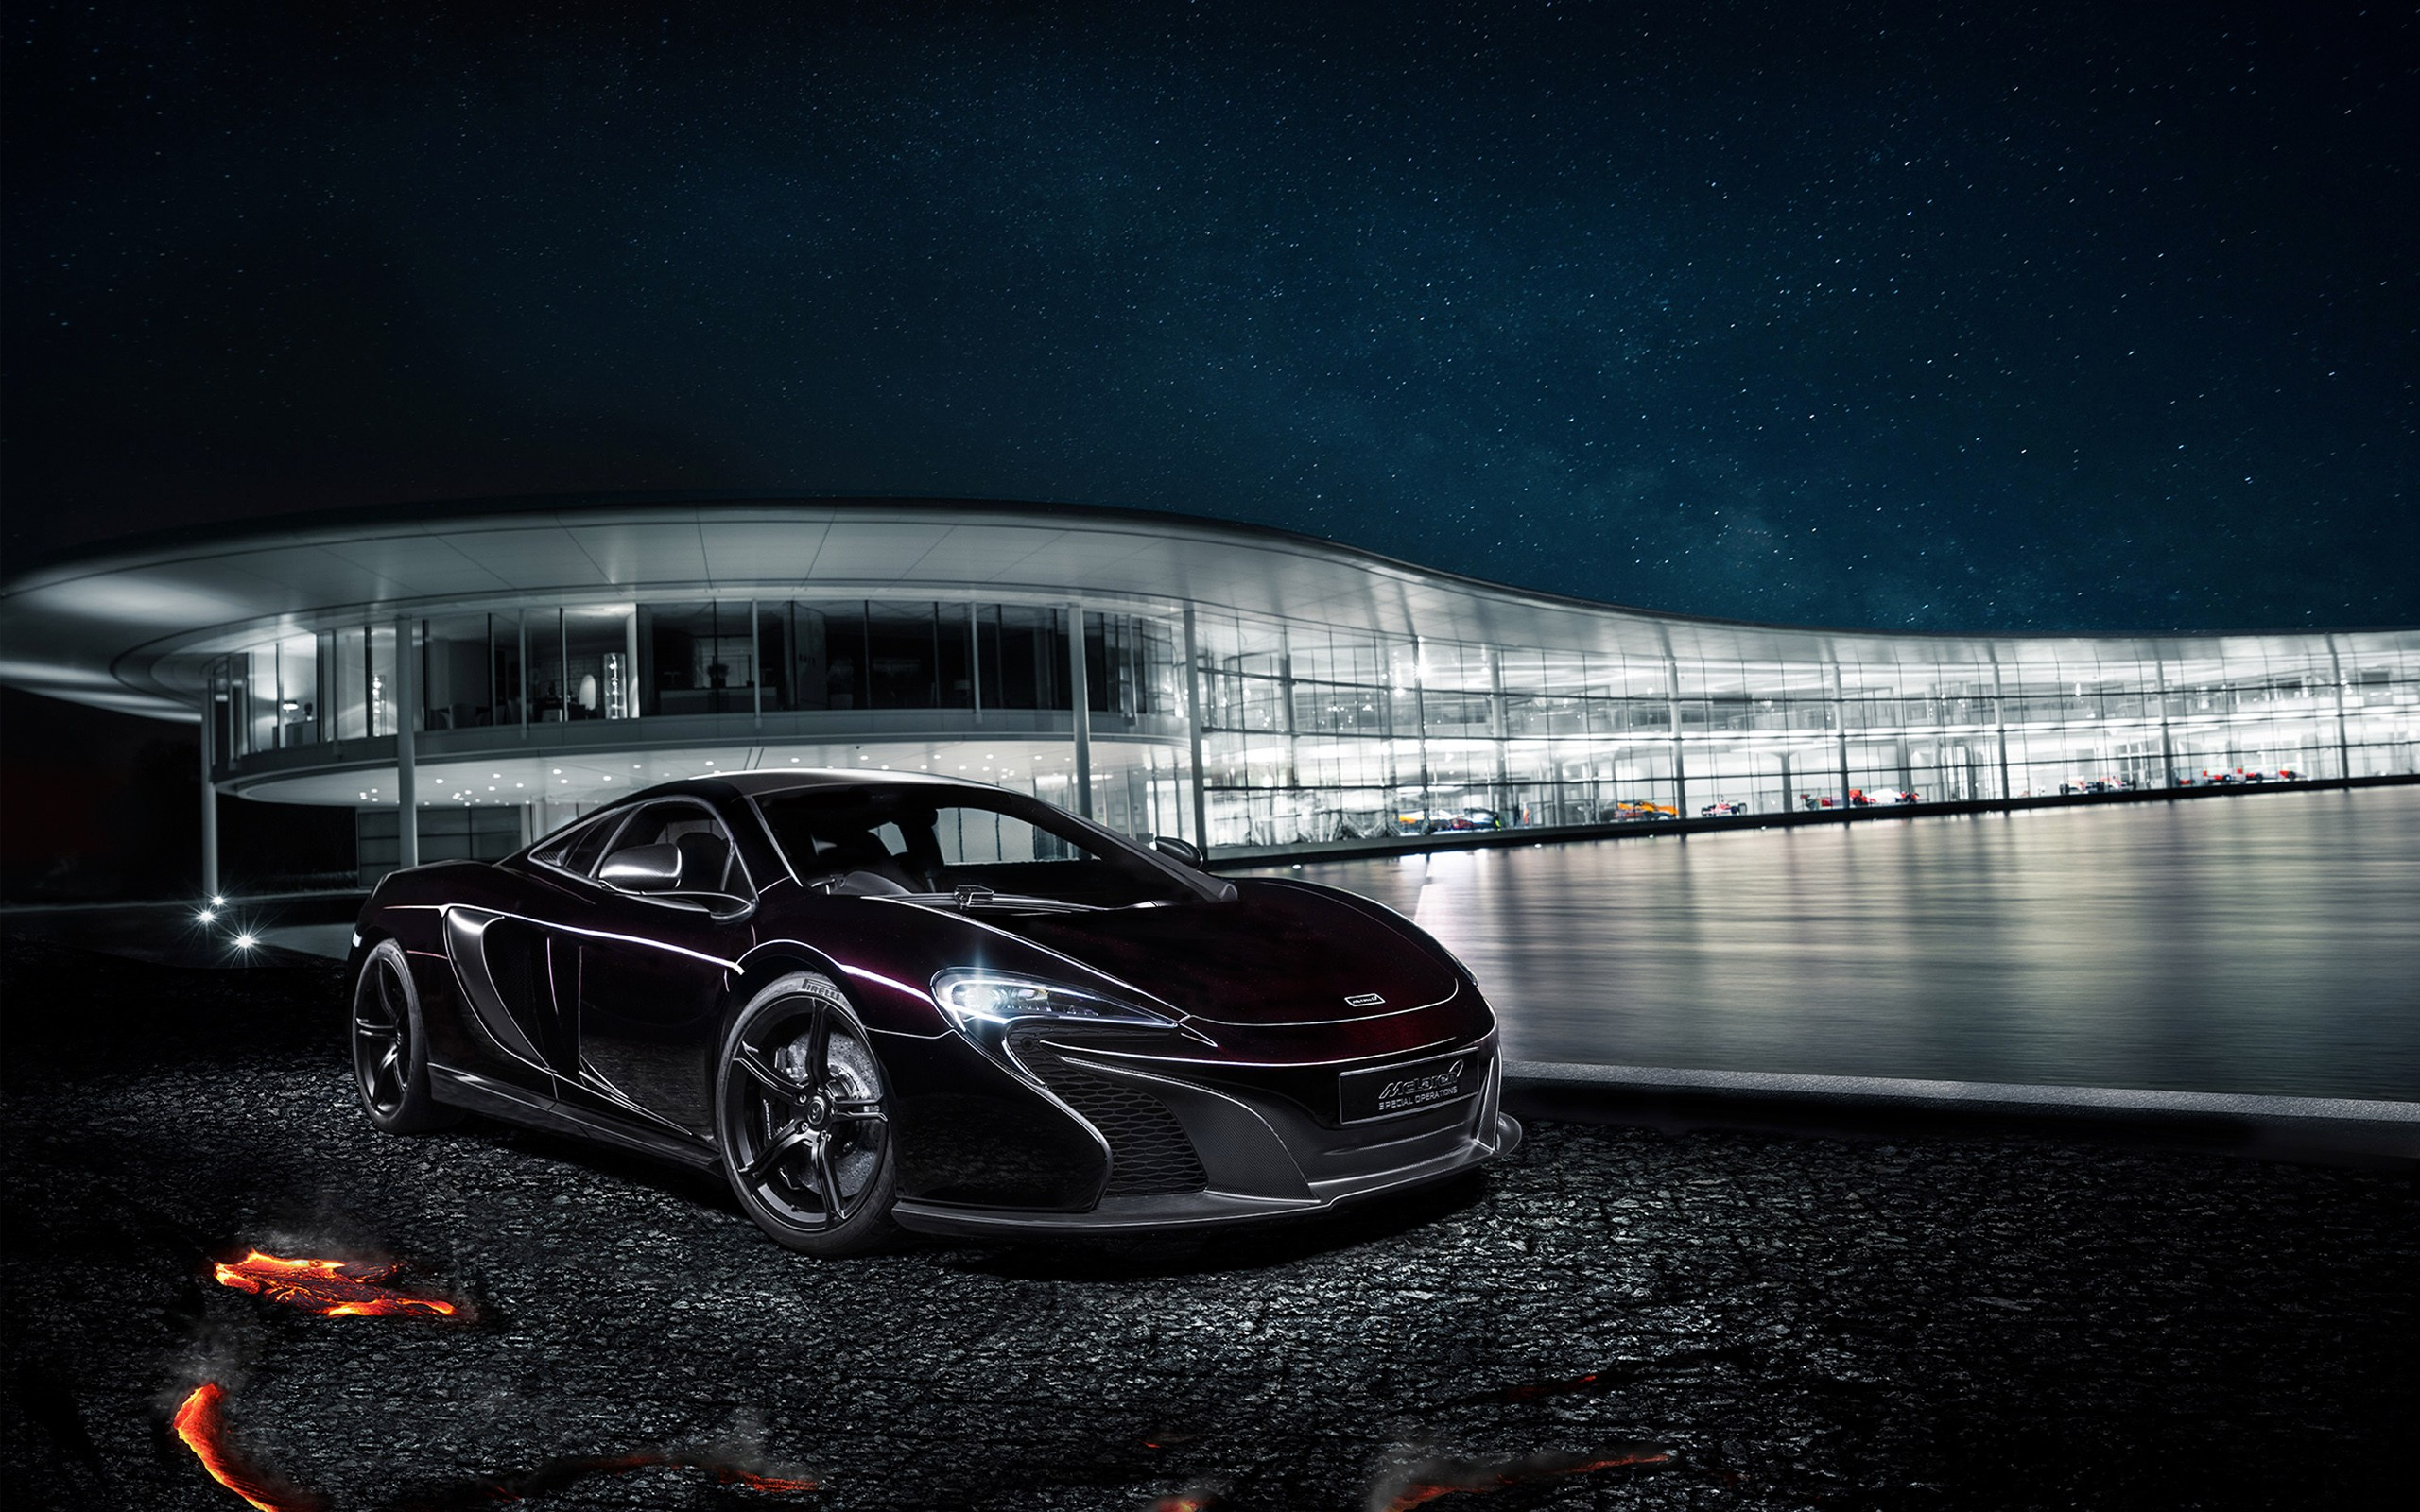 Mclaren Mso 650s Coupe Concept 2014 Wide